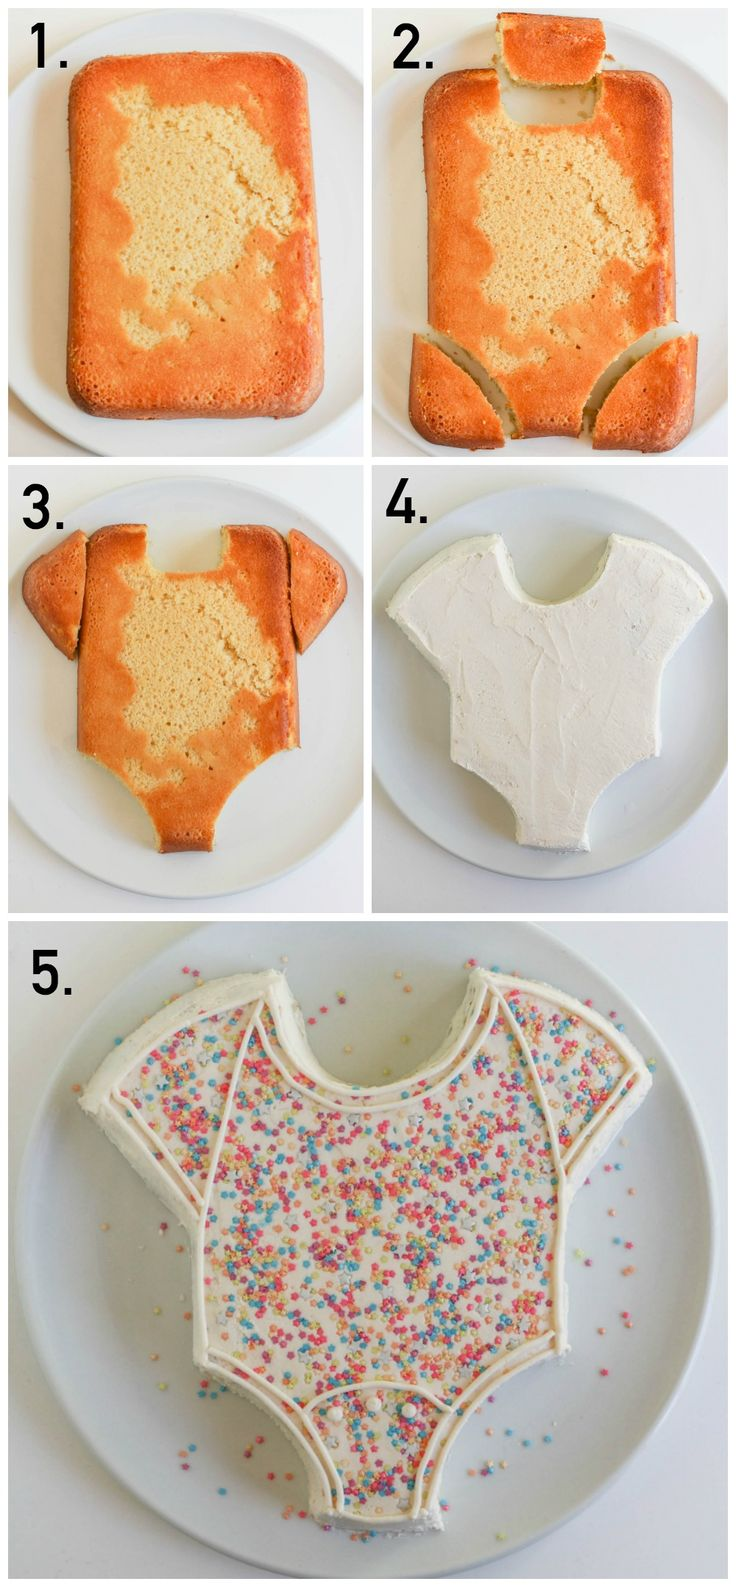 Best 25 Simple Cake Decorating Ideas On Pinterest Cakes Birthday And Easy